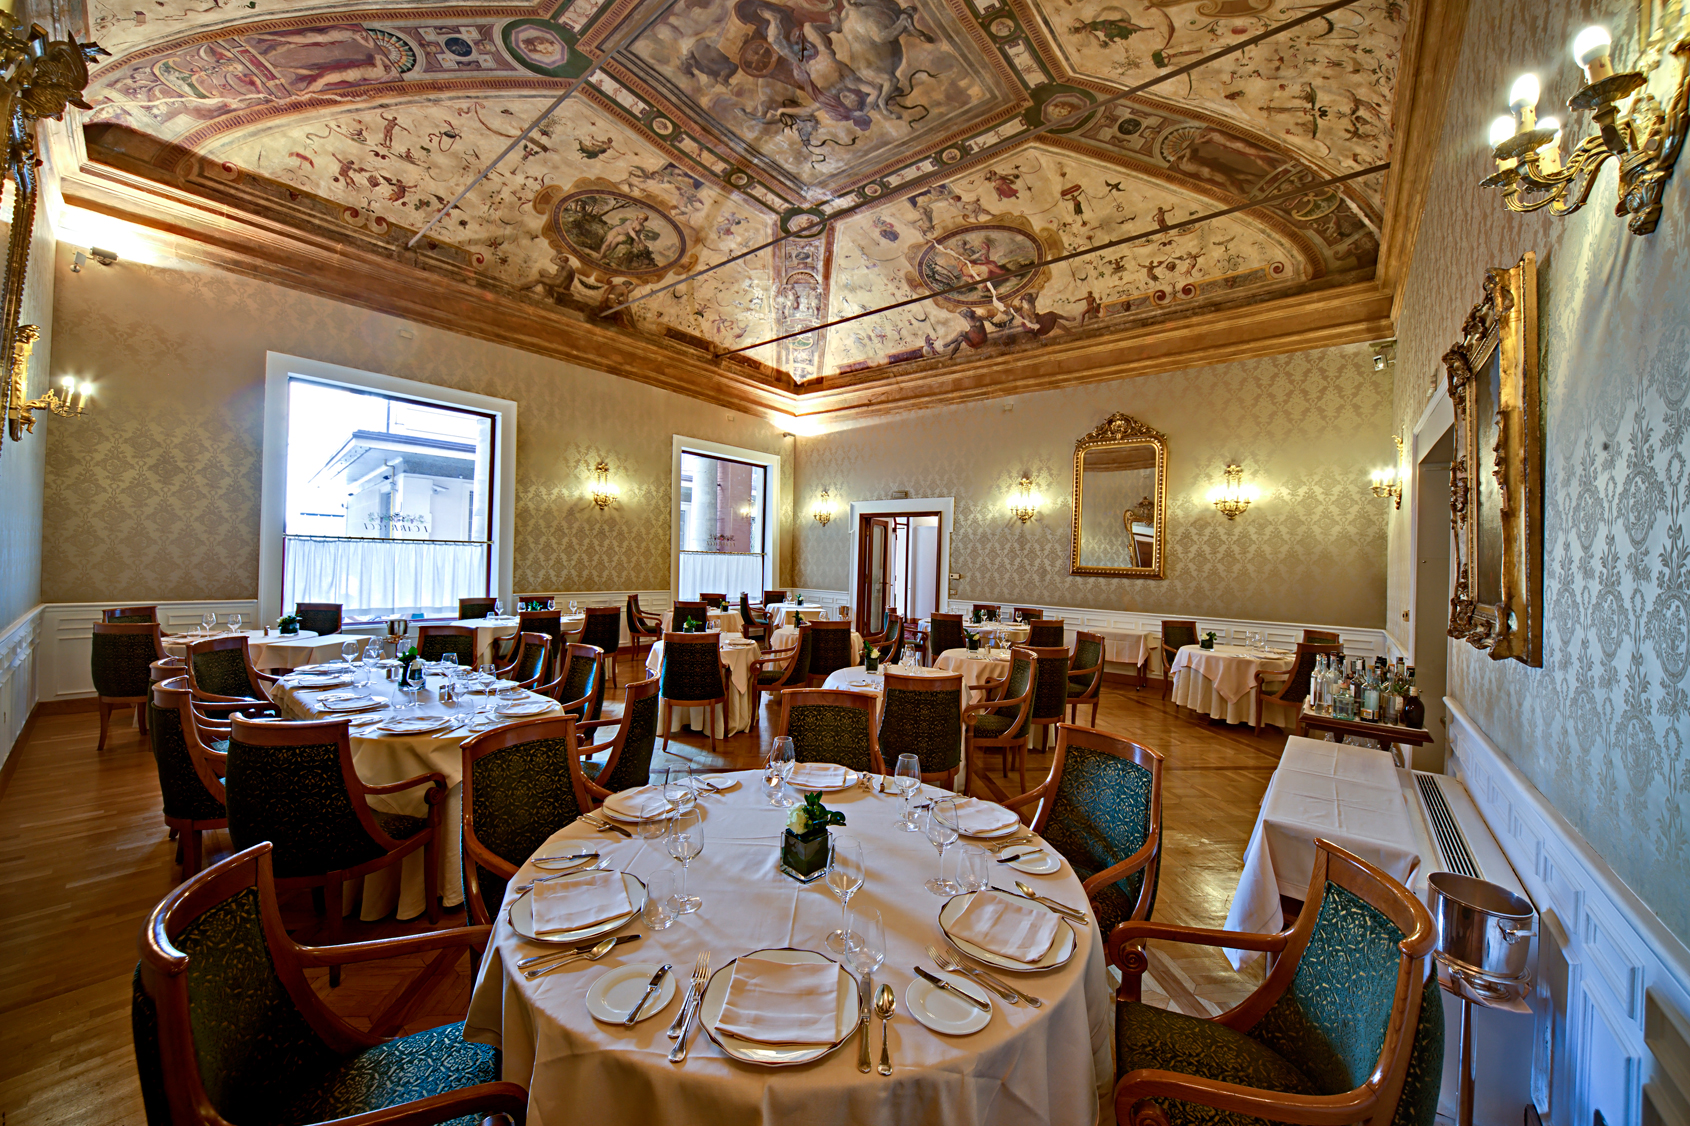 AL GRAND HOTEL MAJESTIC IL BRUNCH FUTURISTA